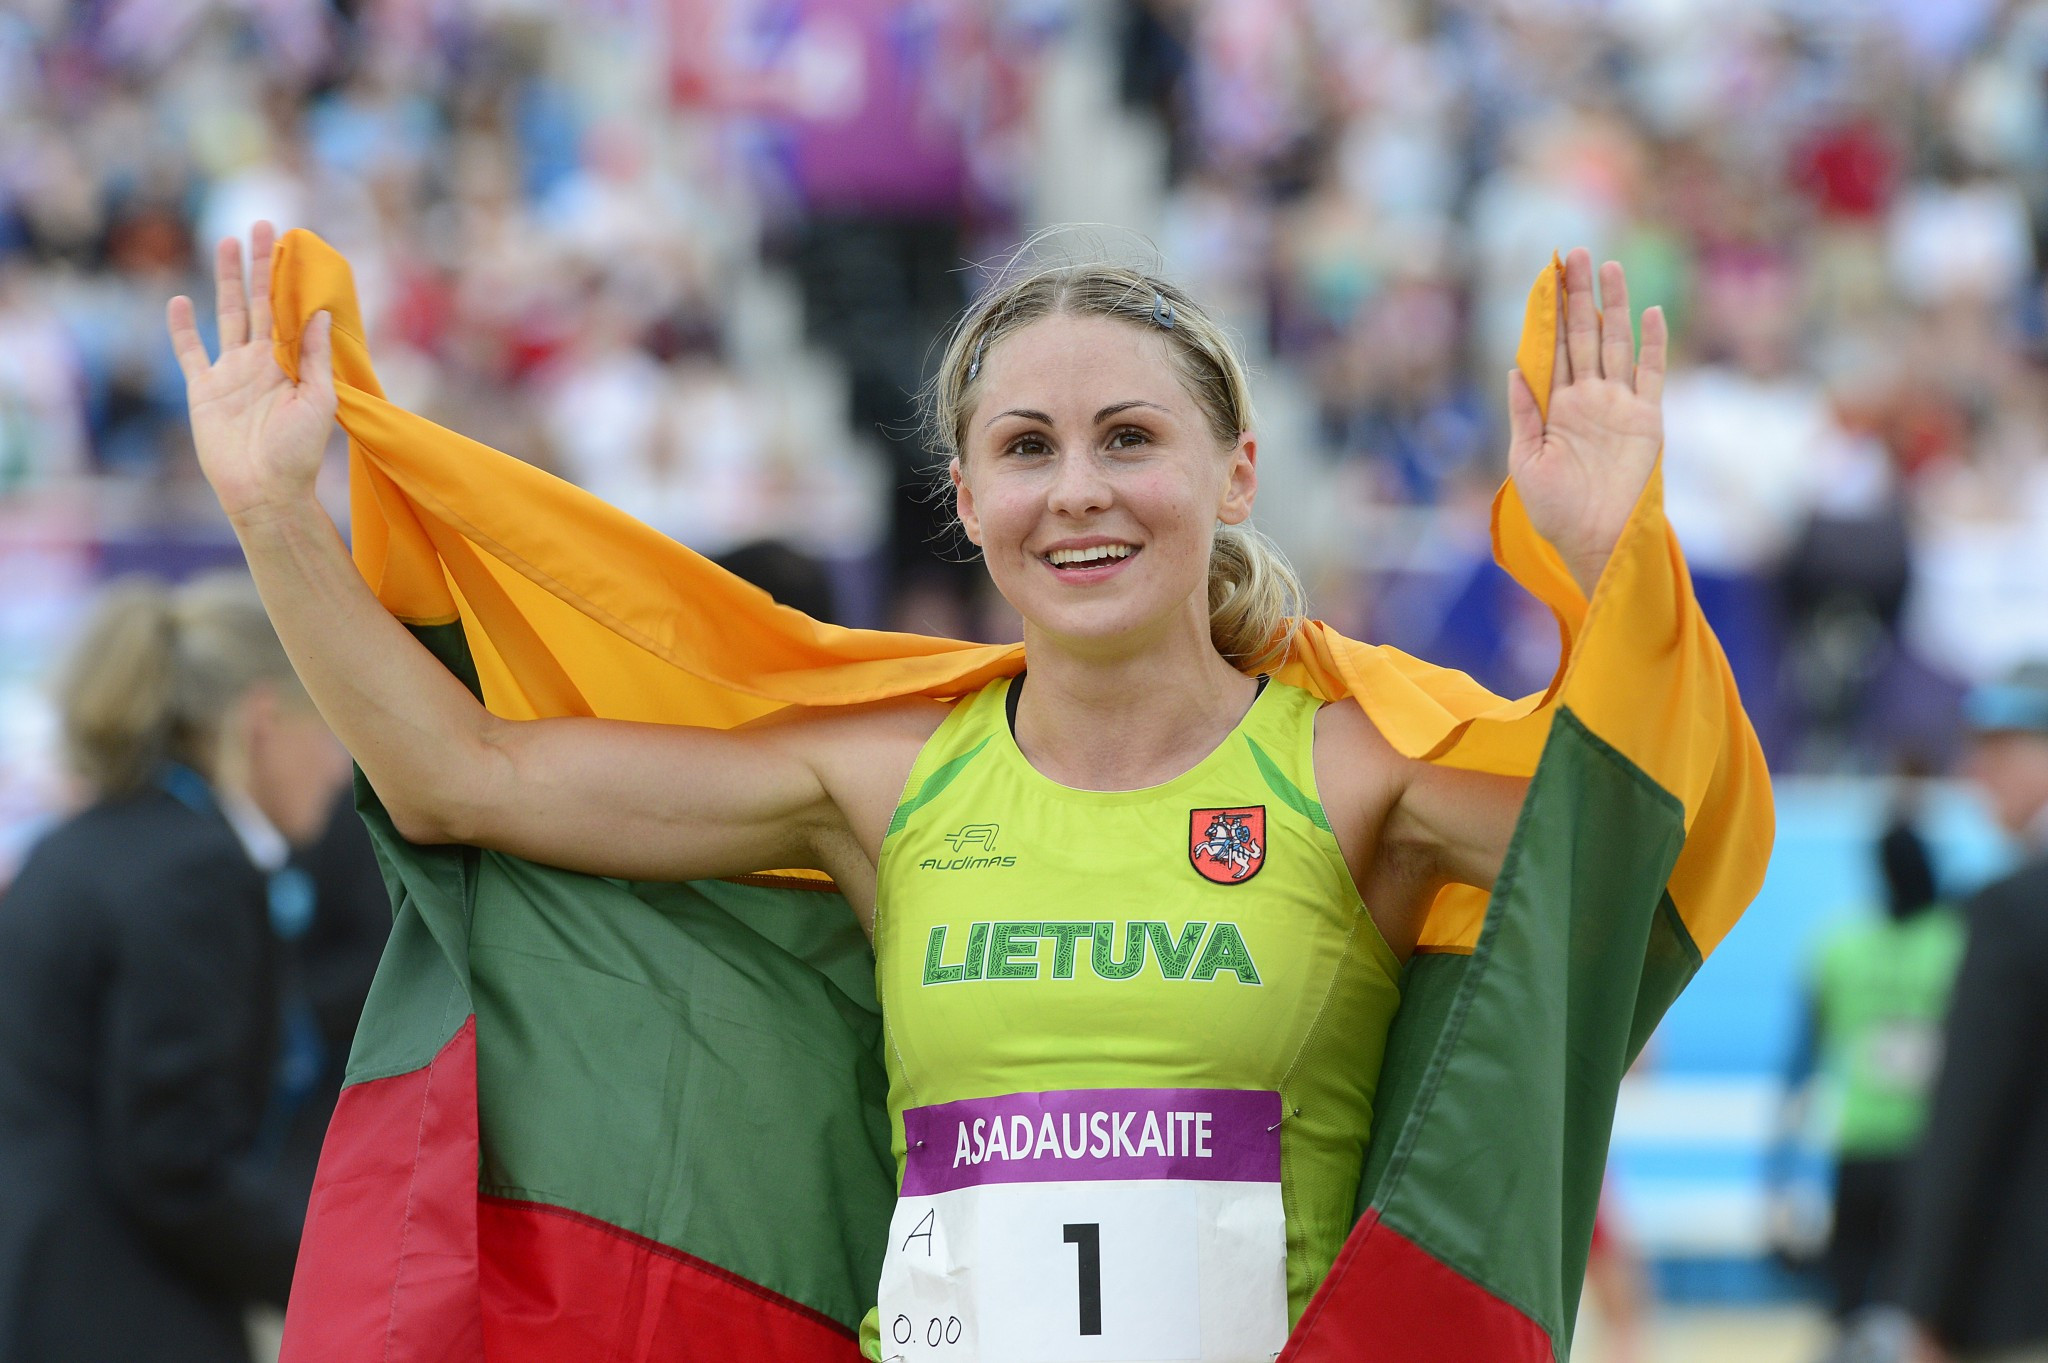 Reigning European and Olympic champion Laura Asadauskaite progressed through to the final ©Getty Images